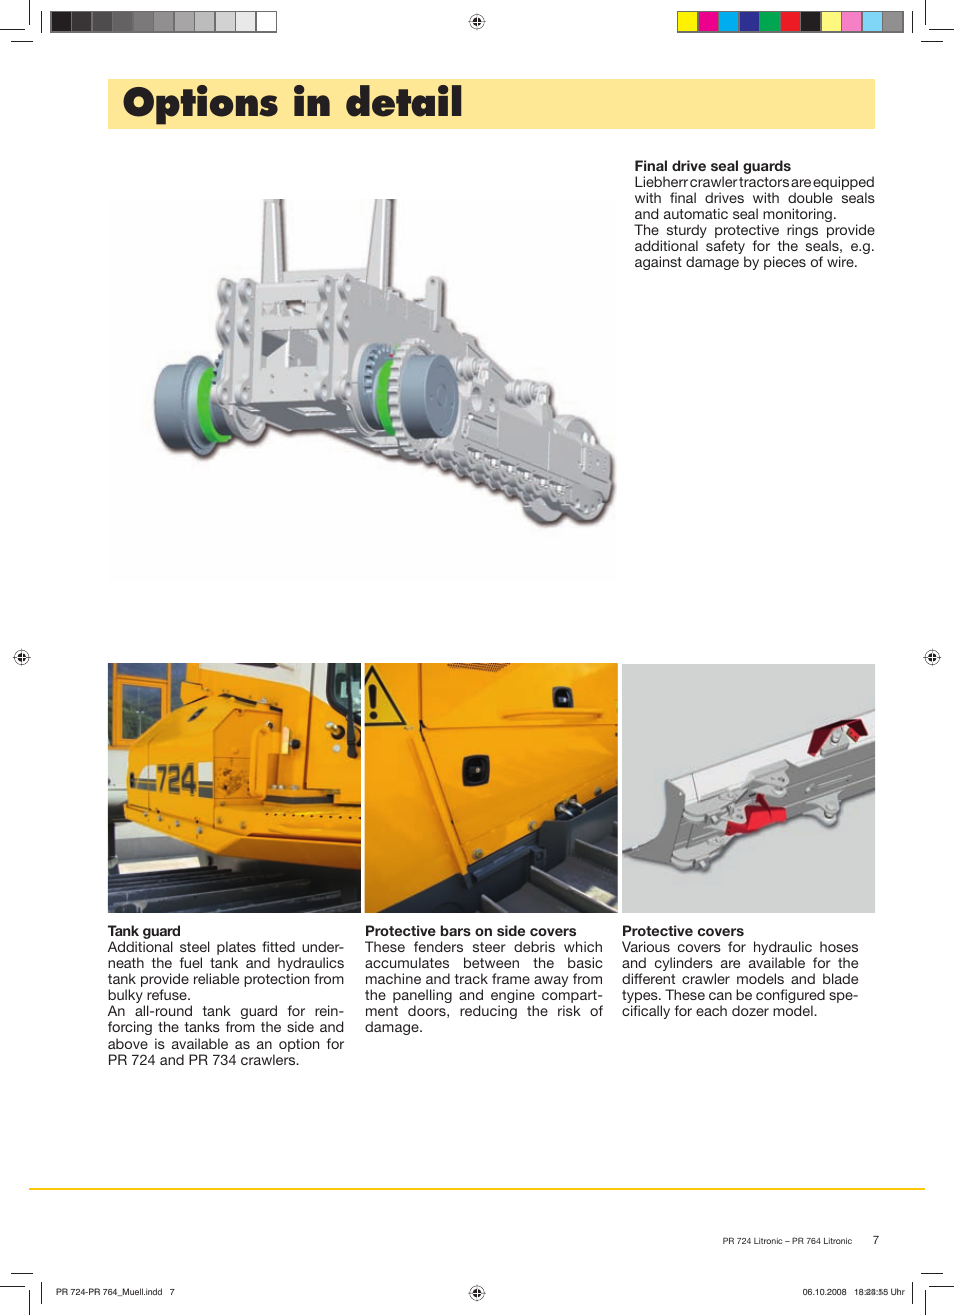 Options in detail | Liebherr PR 764 Litronic User Manual | Page 7 / 12